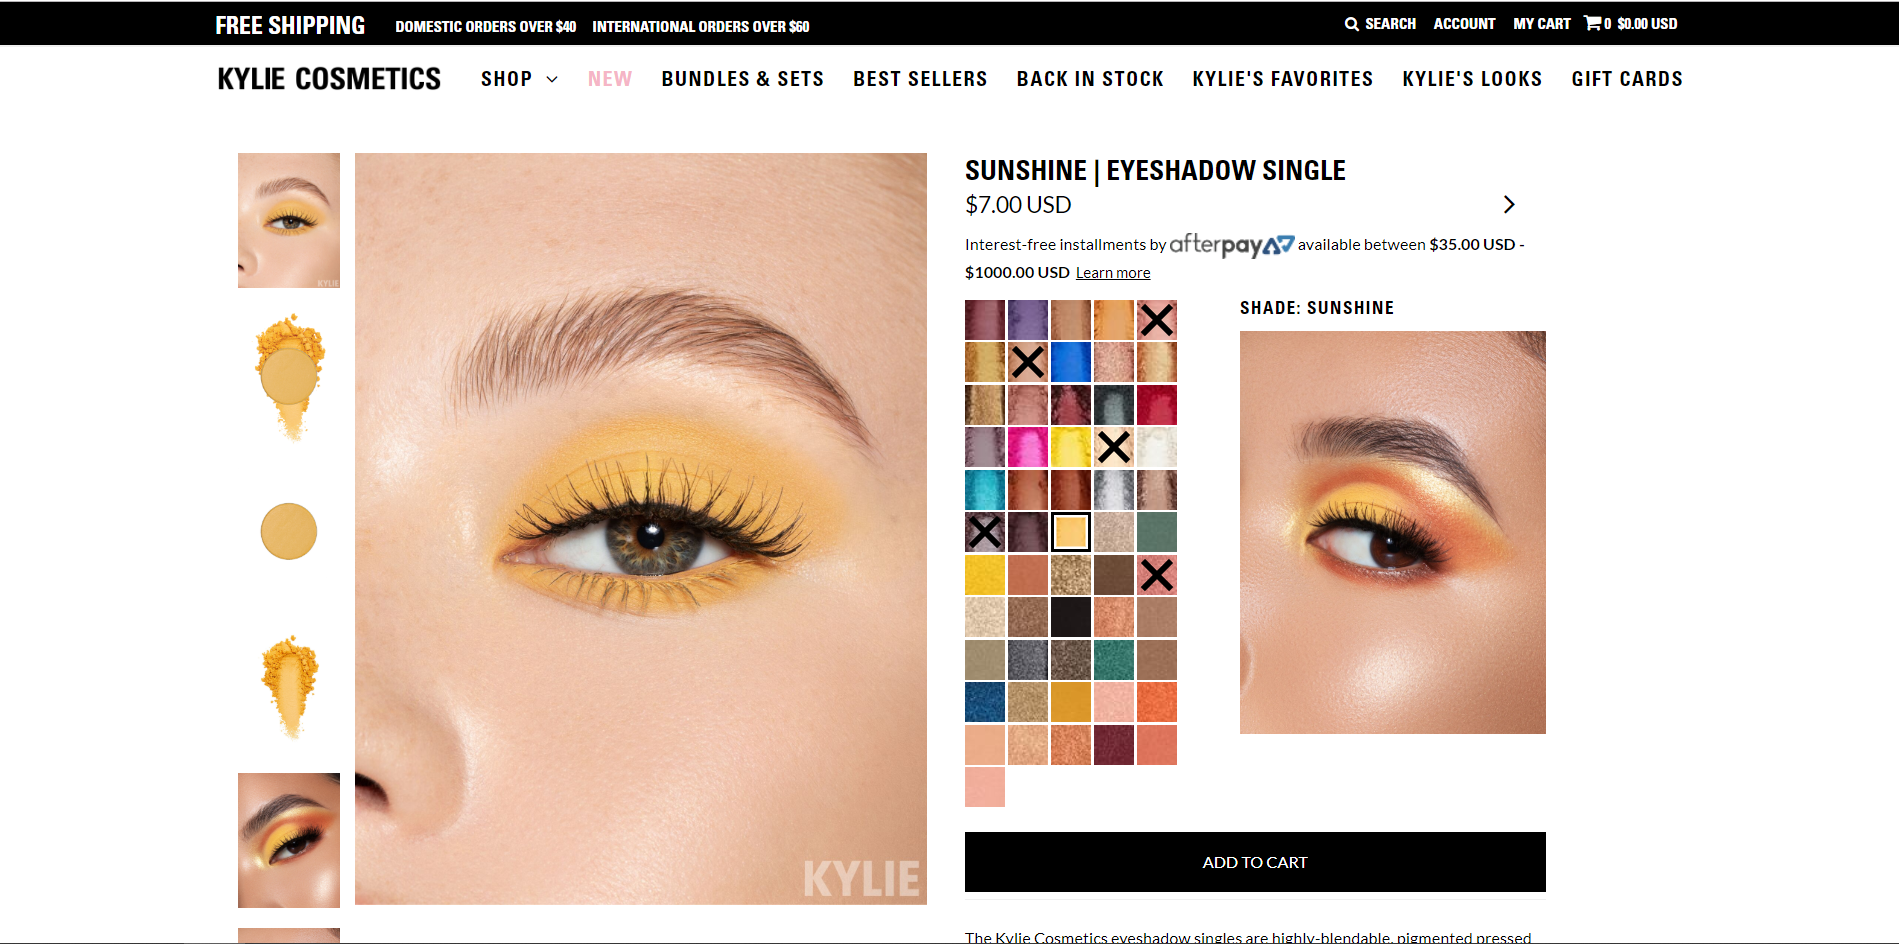 Example of products at Kylie Cosmetics